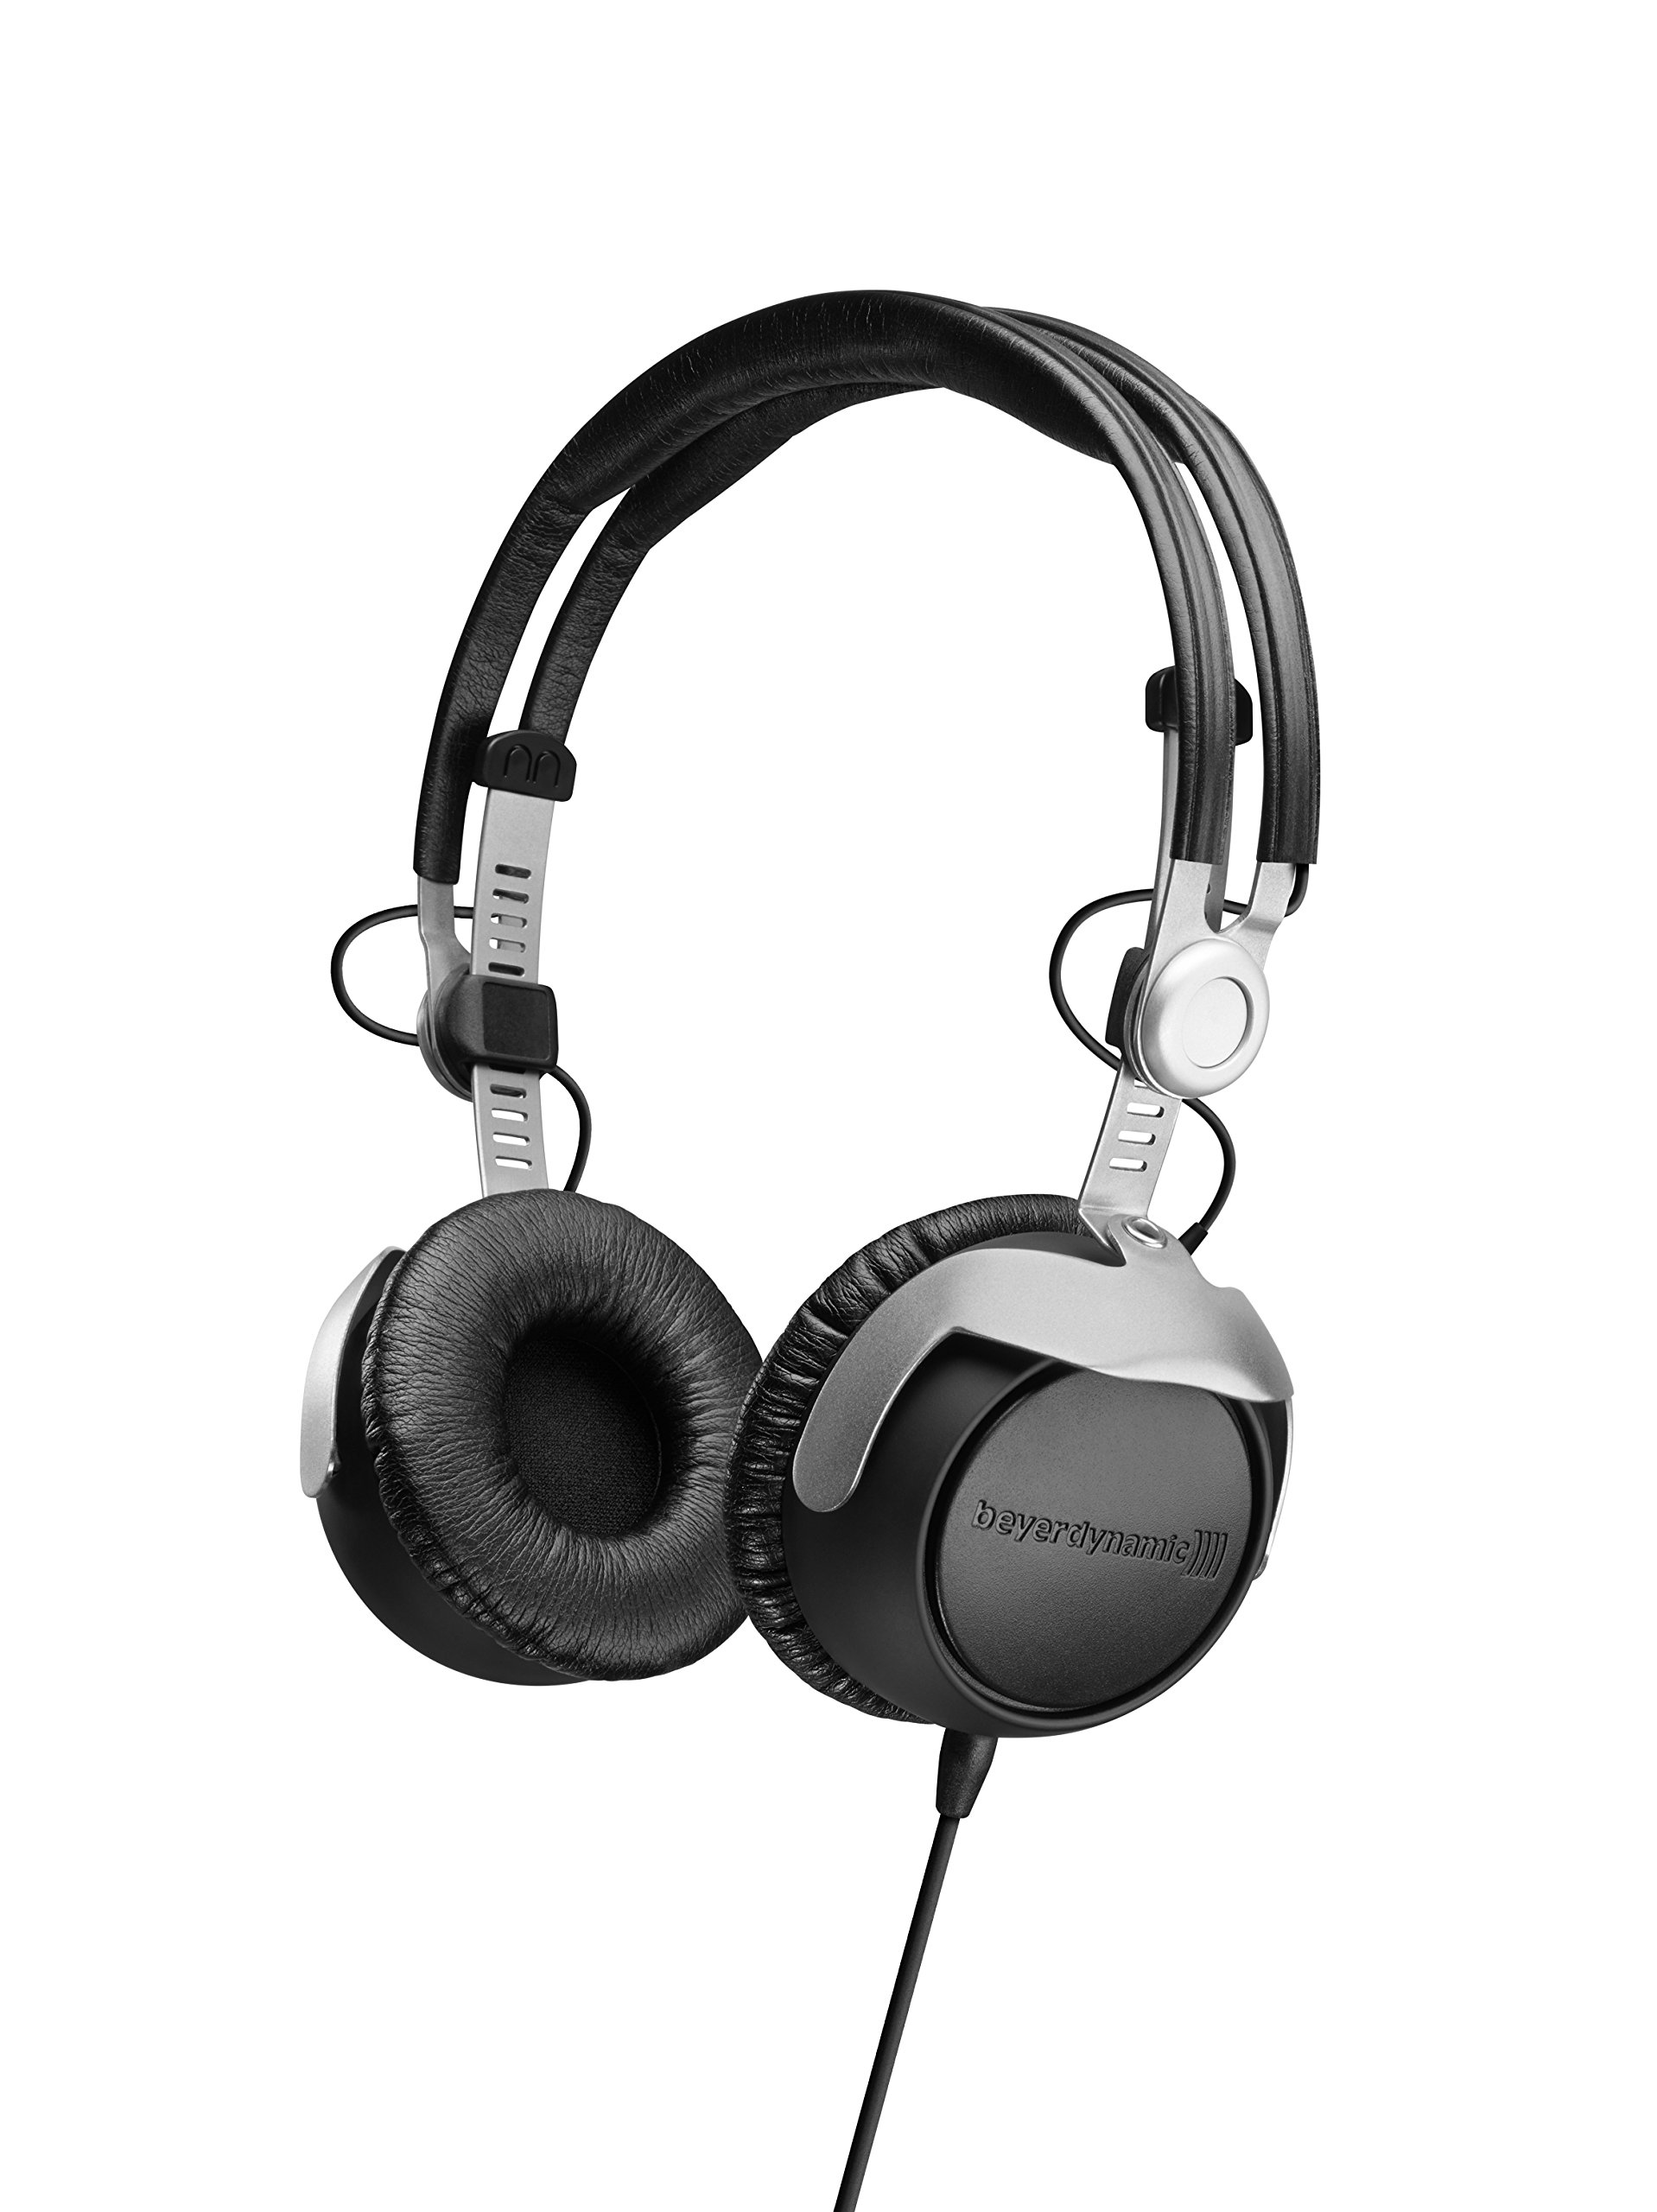 Beyerdynamic DT-1350-80 Closed Supraaural Headphone for Control and Monitoring Applications, Musicians, and DJ's, 80 Ohms